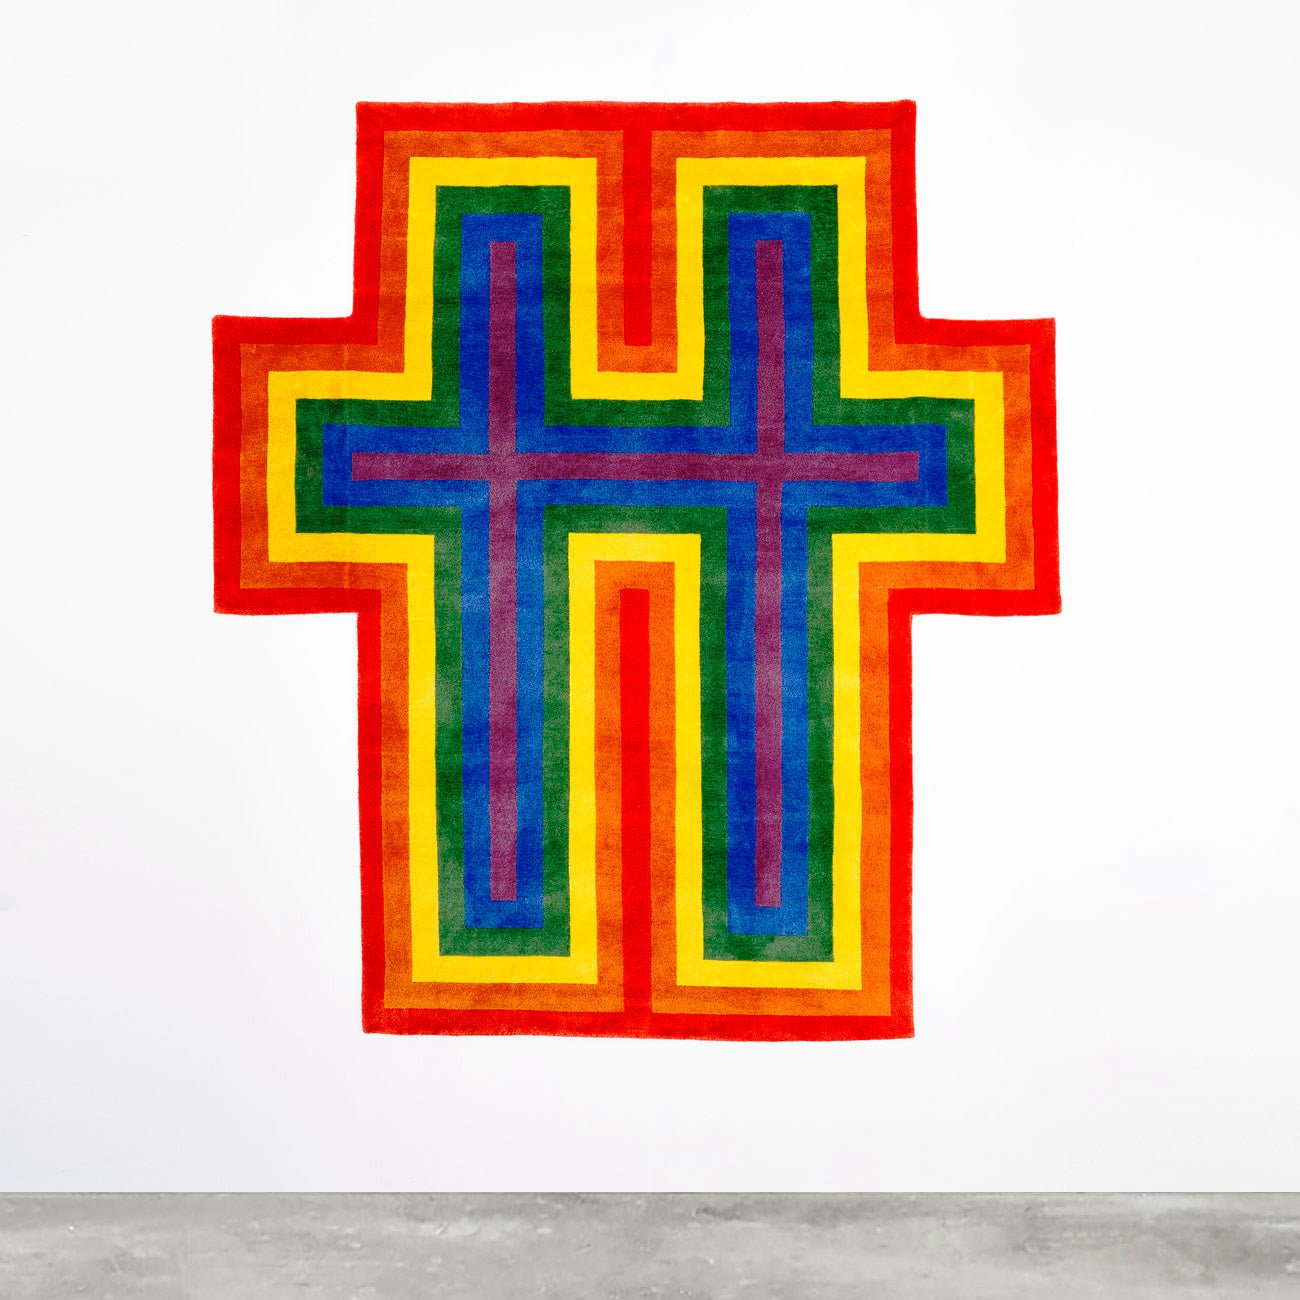 JONATHAN HOROWITZ, RAINBOW CROSS FOR TWO, 2018